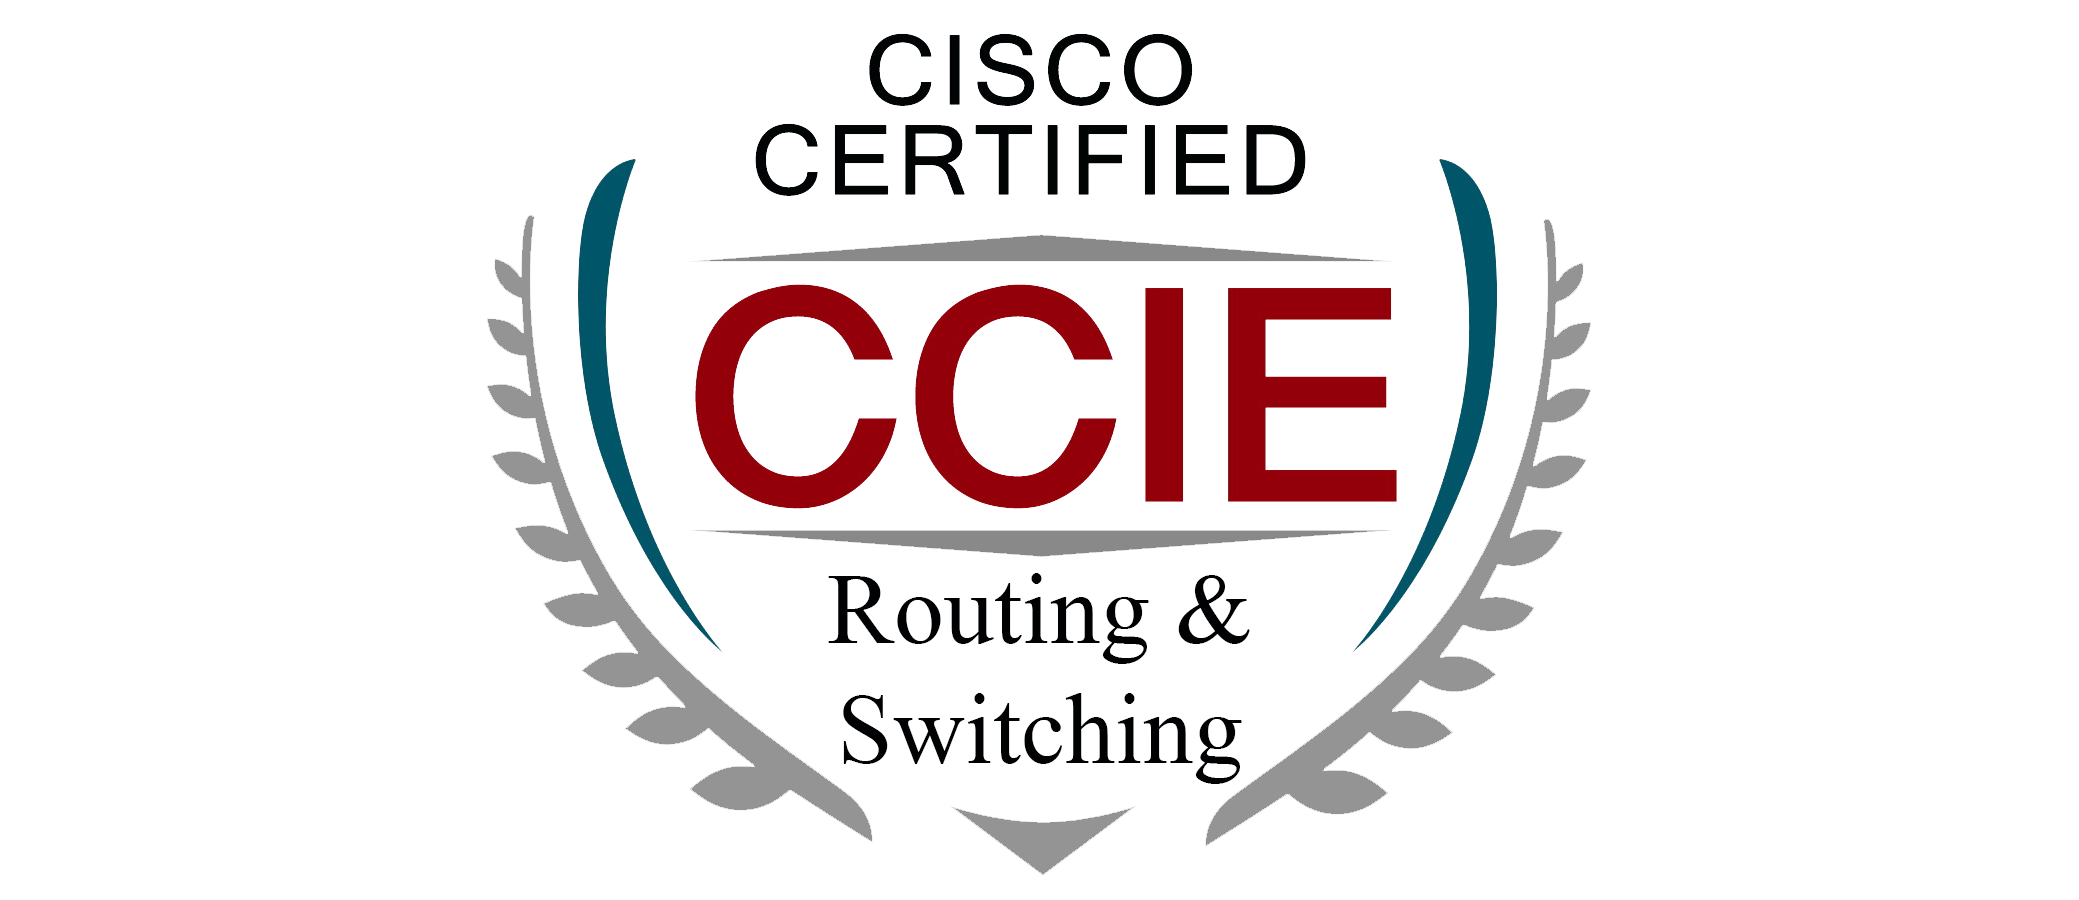 Cisco Certified Internetwork Expert Routing and Switching (CCIE Routing and Switching) certifies the skills required of expert-level network engineers to plan, operate and troubleshoot complex, converged network infrastructure. More info...